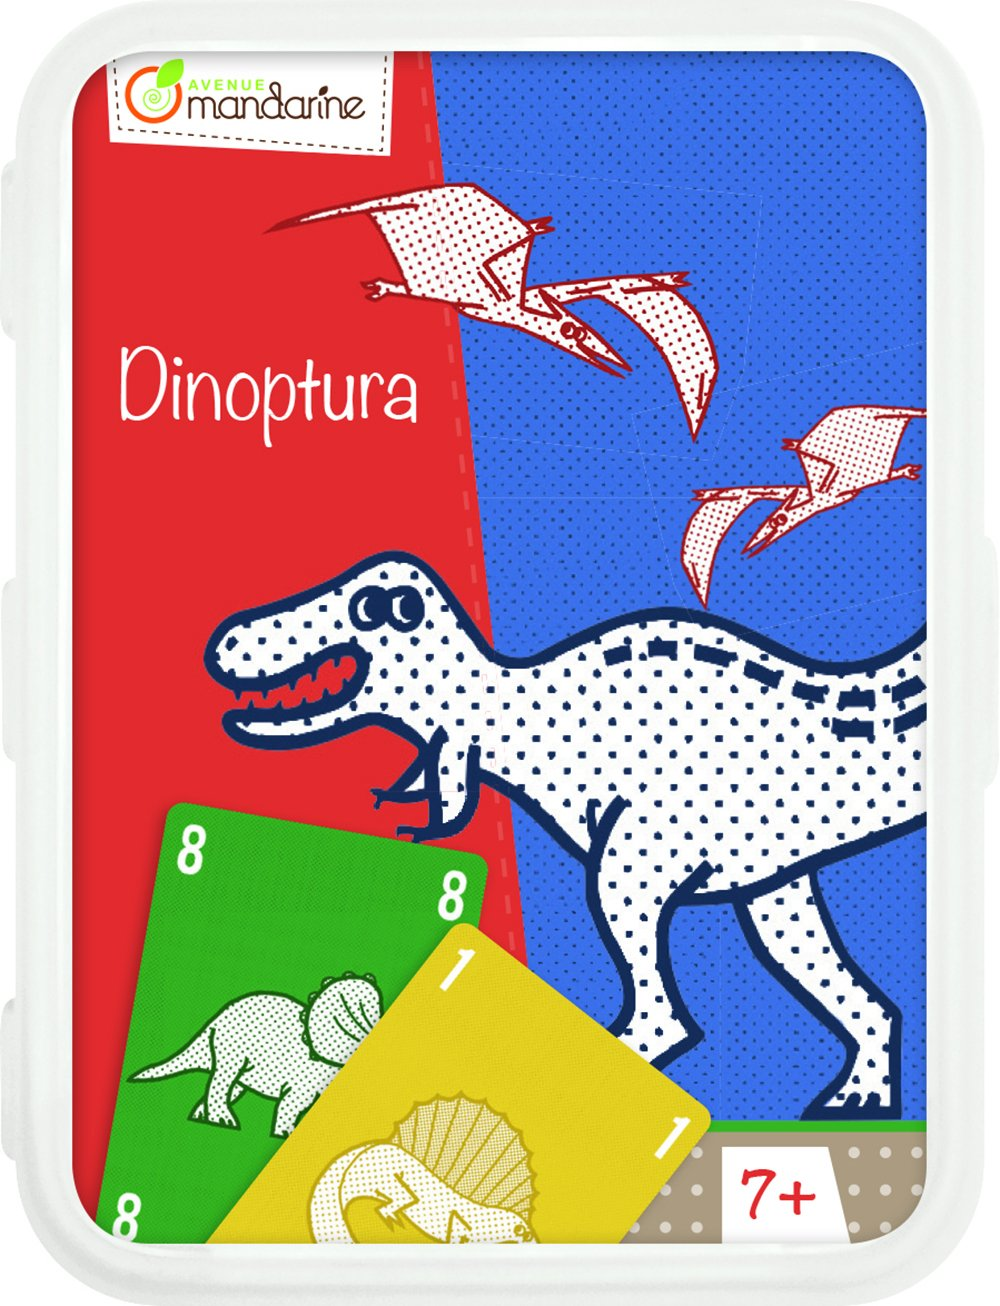 Decopatch-CO107O-Avenue Mandarine Dinoptura-Juegos de Cartas ...